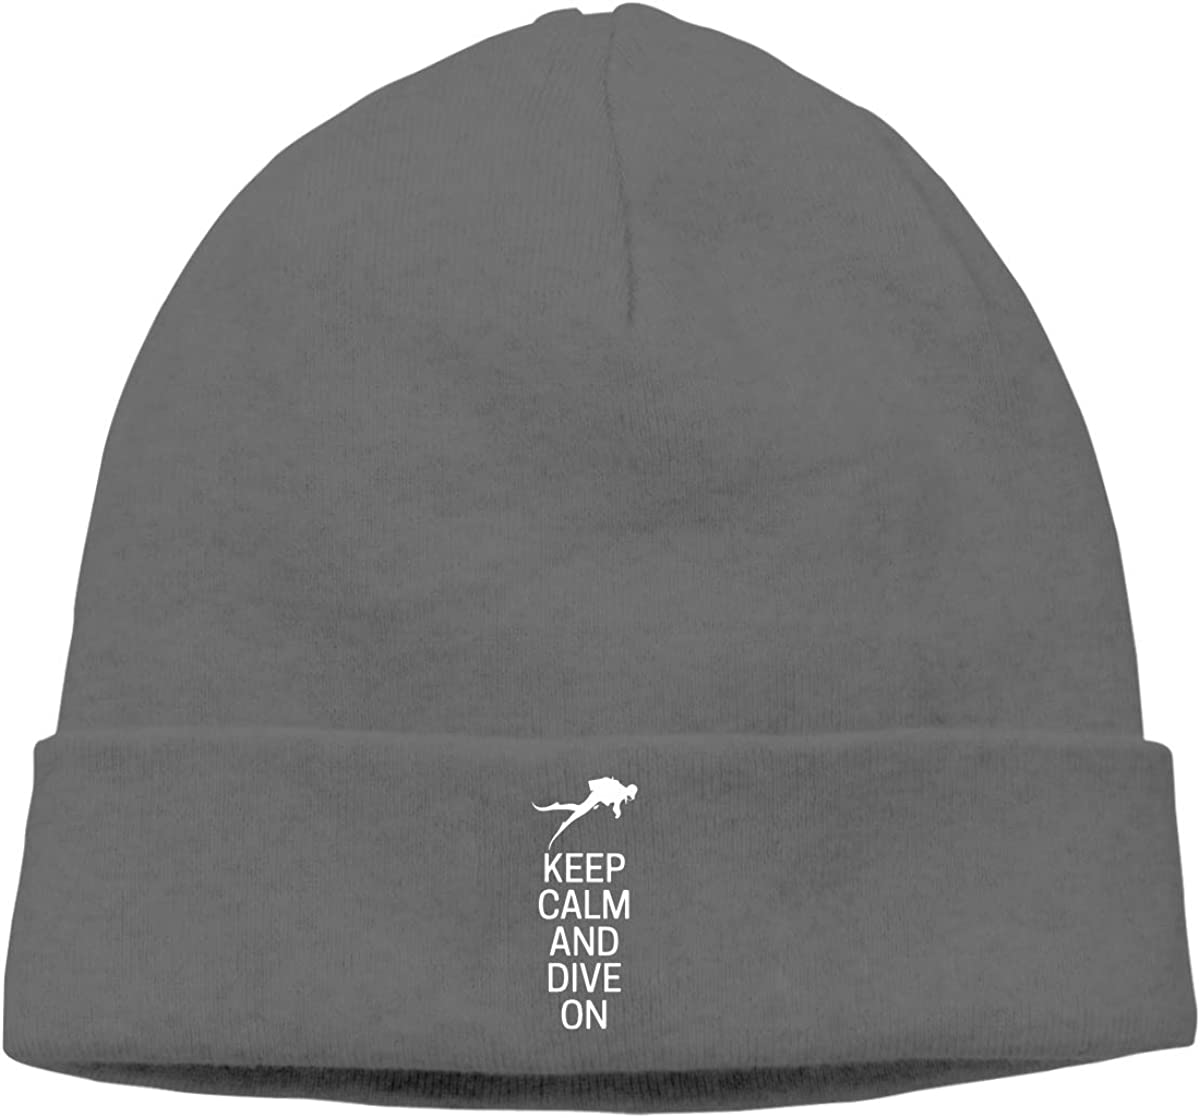 Unisex Keep Calm and Dive On Soft Knit Caps